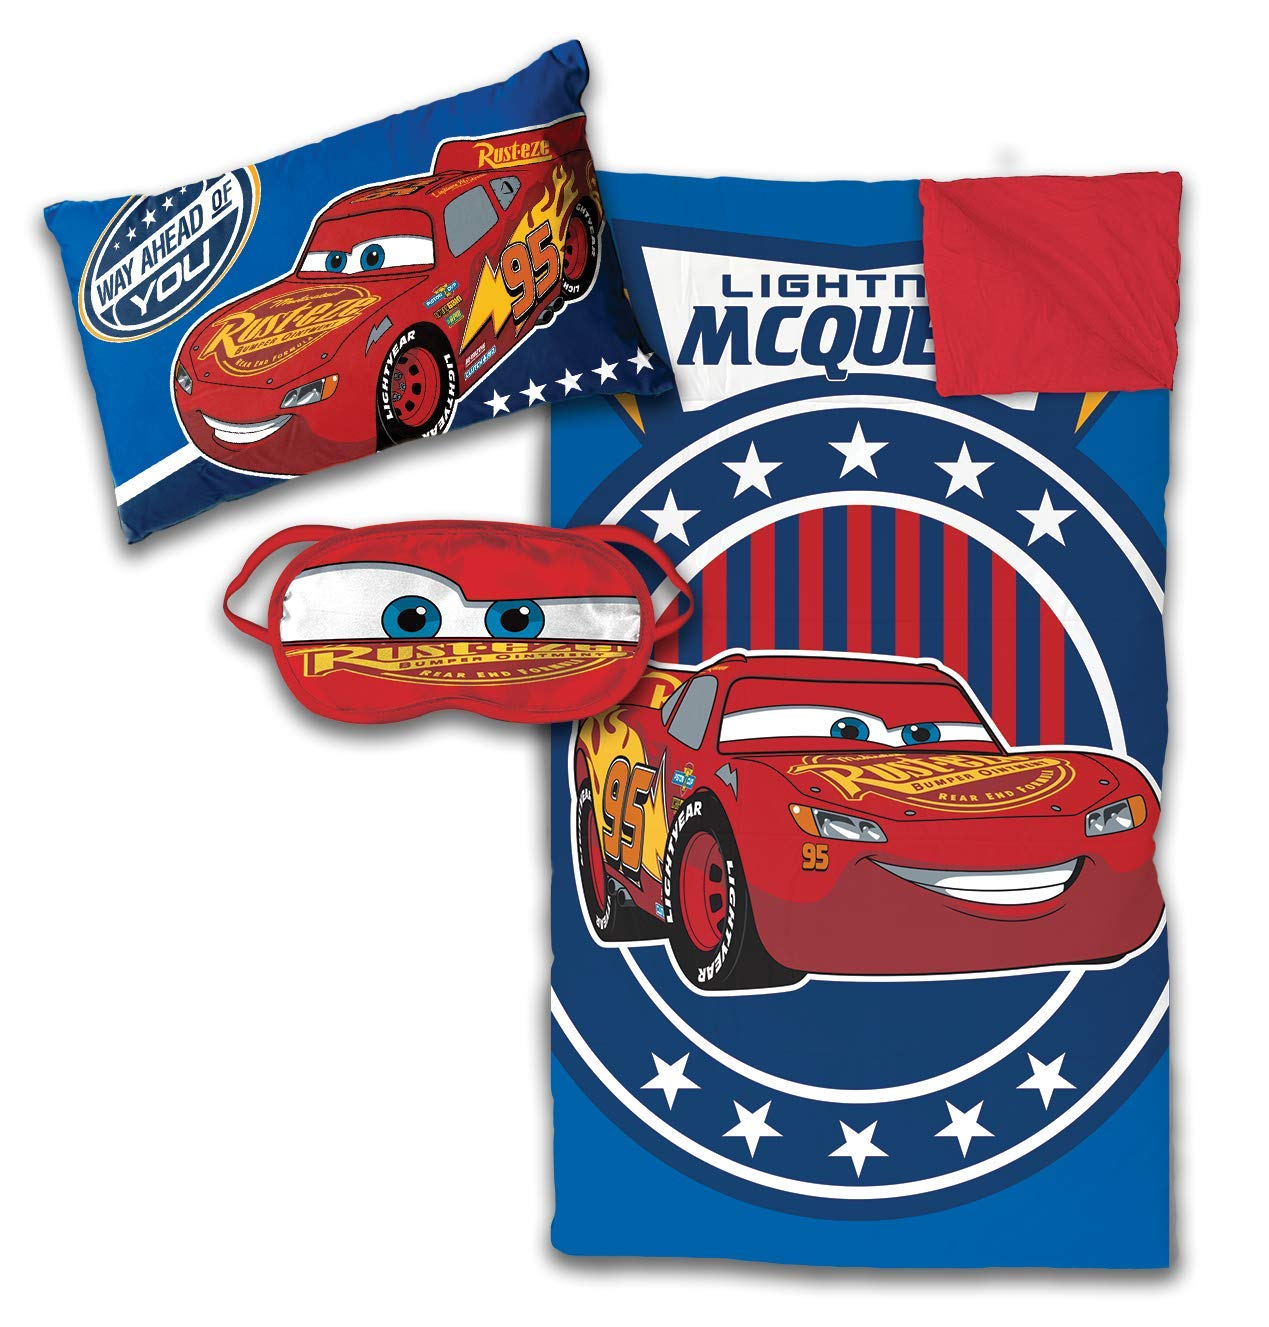 Jay Franco Disney/Pixar Cars 3 Piece Sleepover Set - Cozy & Warm Kids Slumber Bag with Pillow & Eye Mask - Featuring Lightning McQueen (Official Disney/Pixar Product)